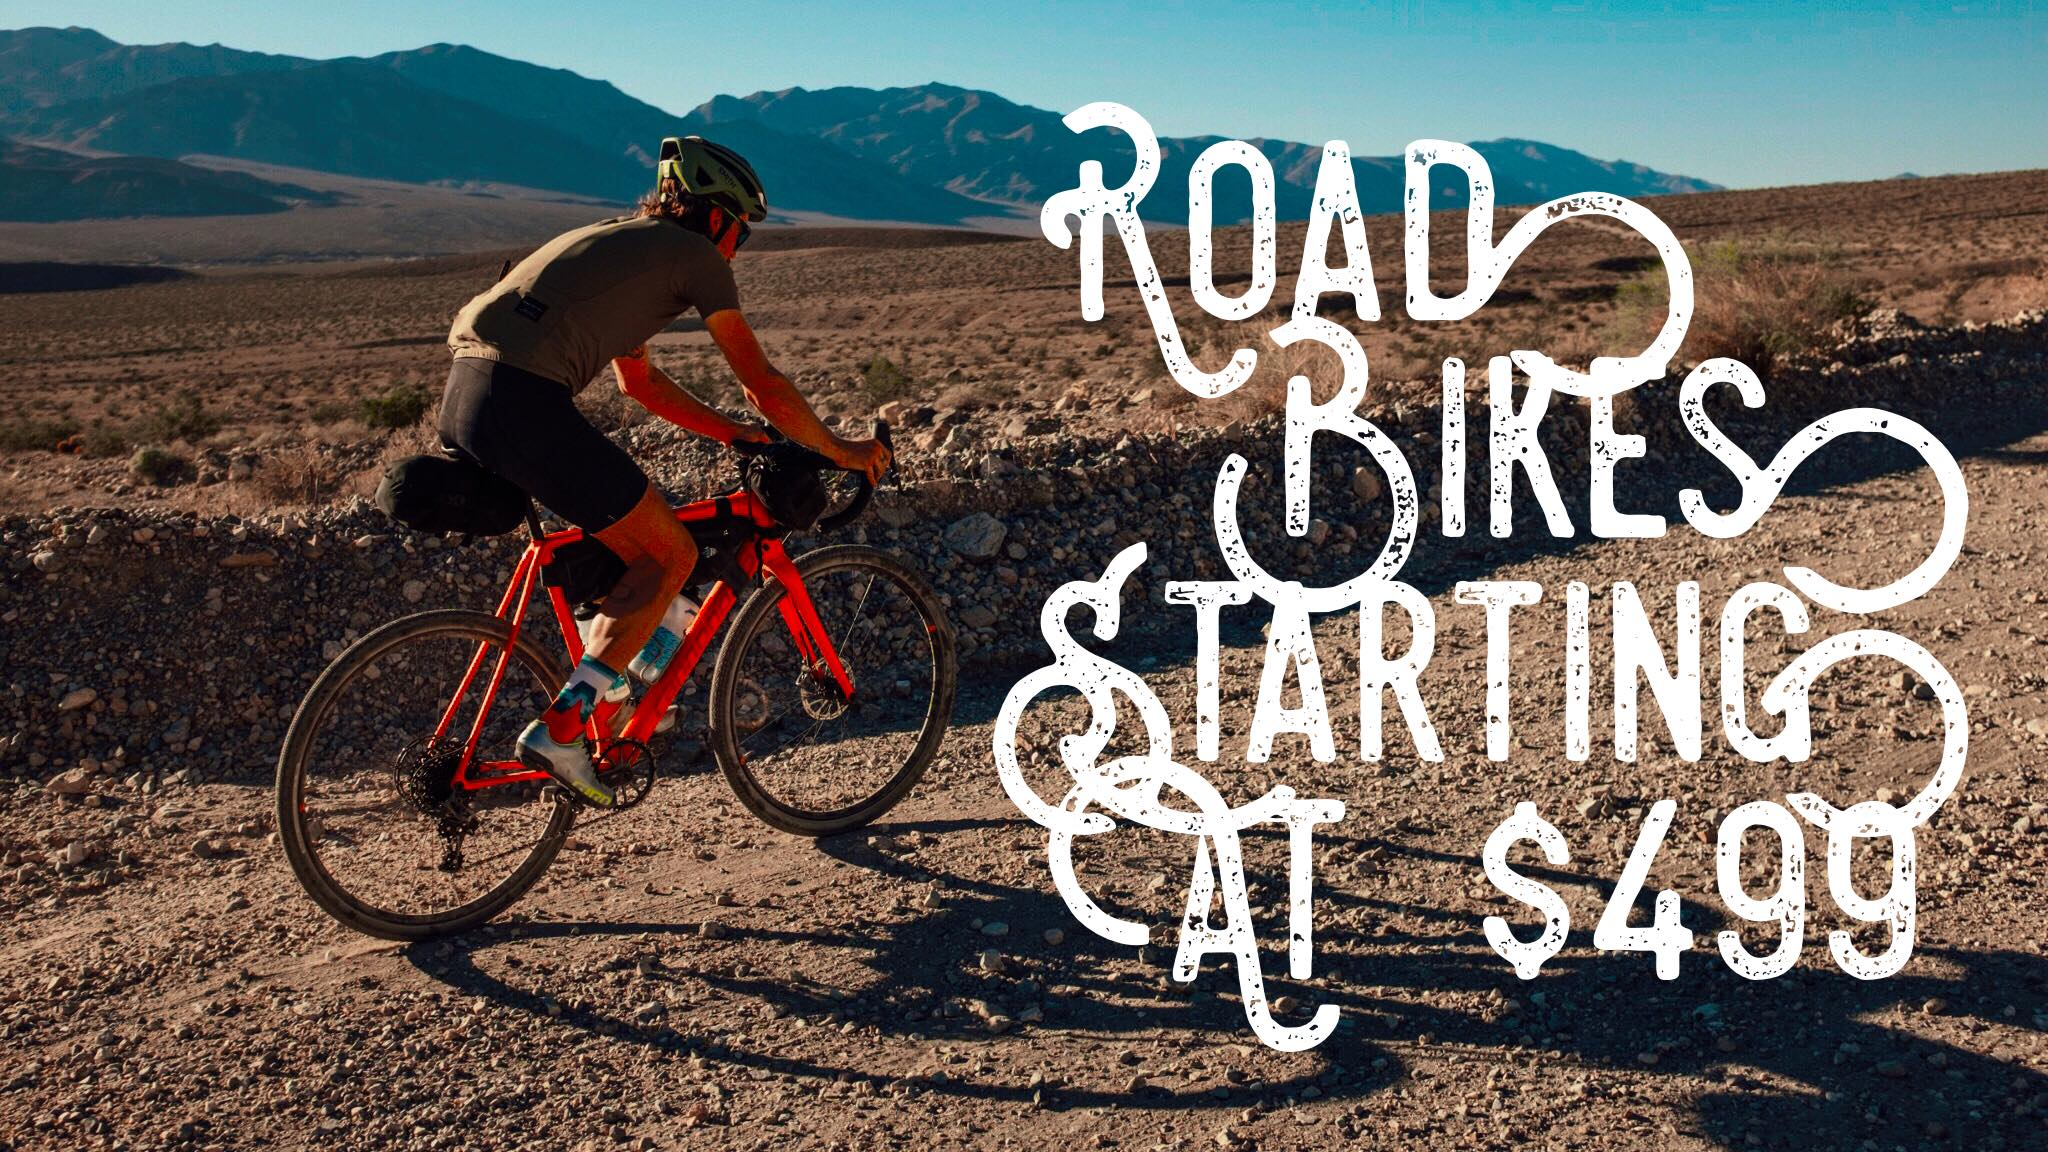 ROAD BIKES STARTING AT $499